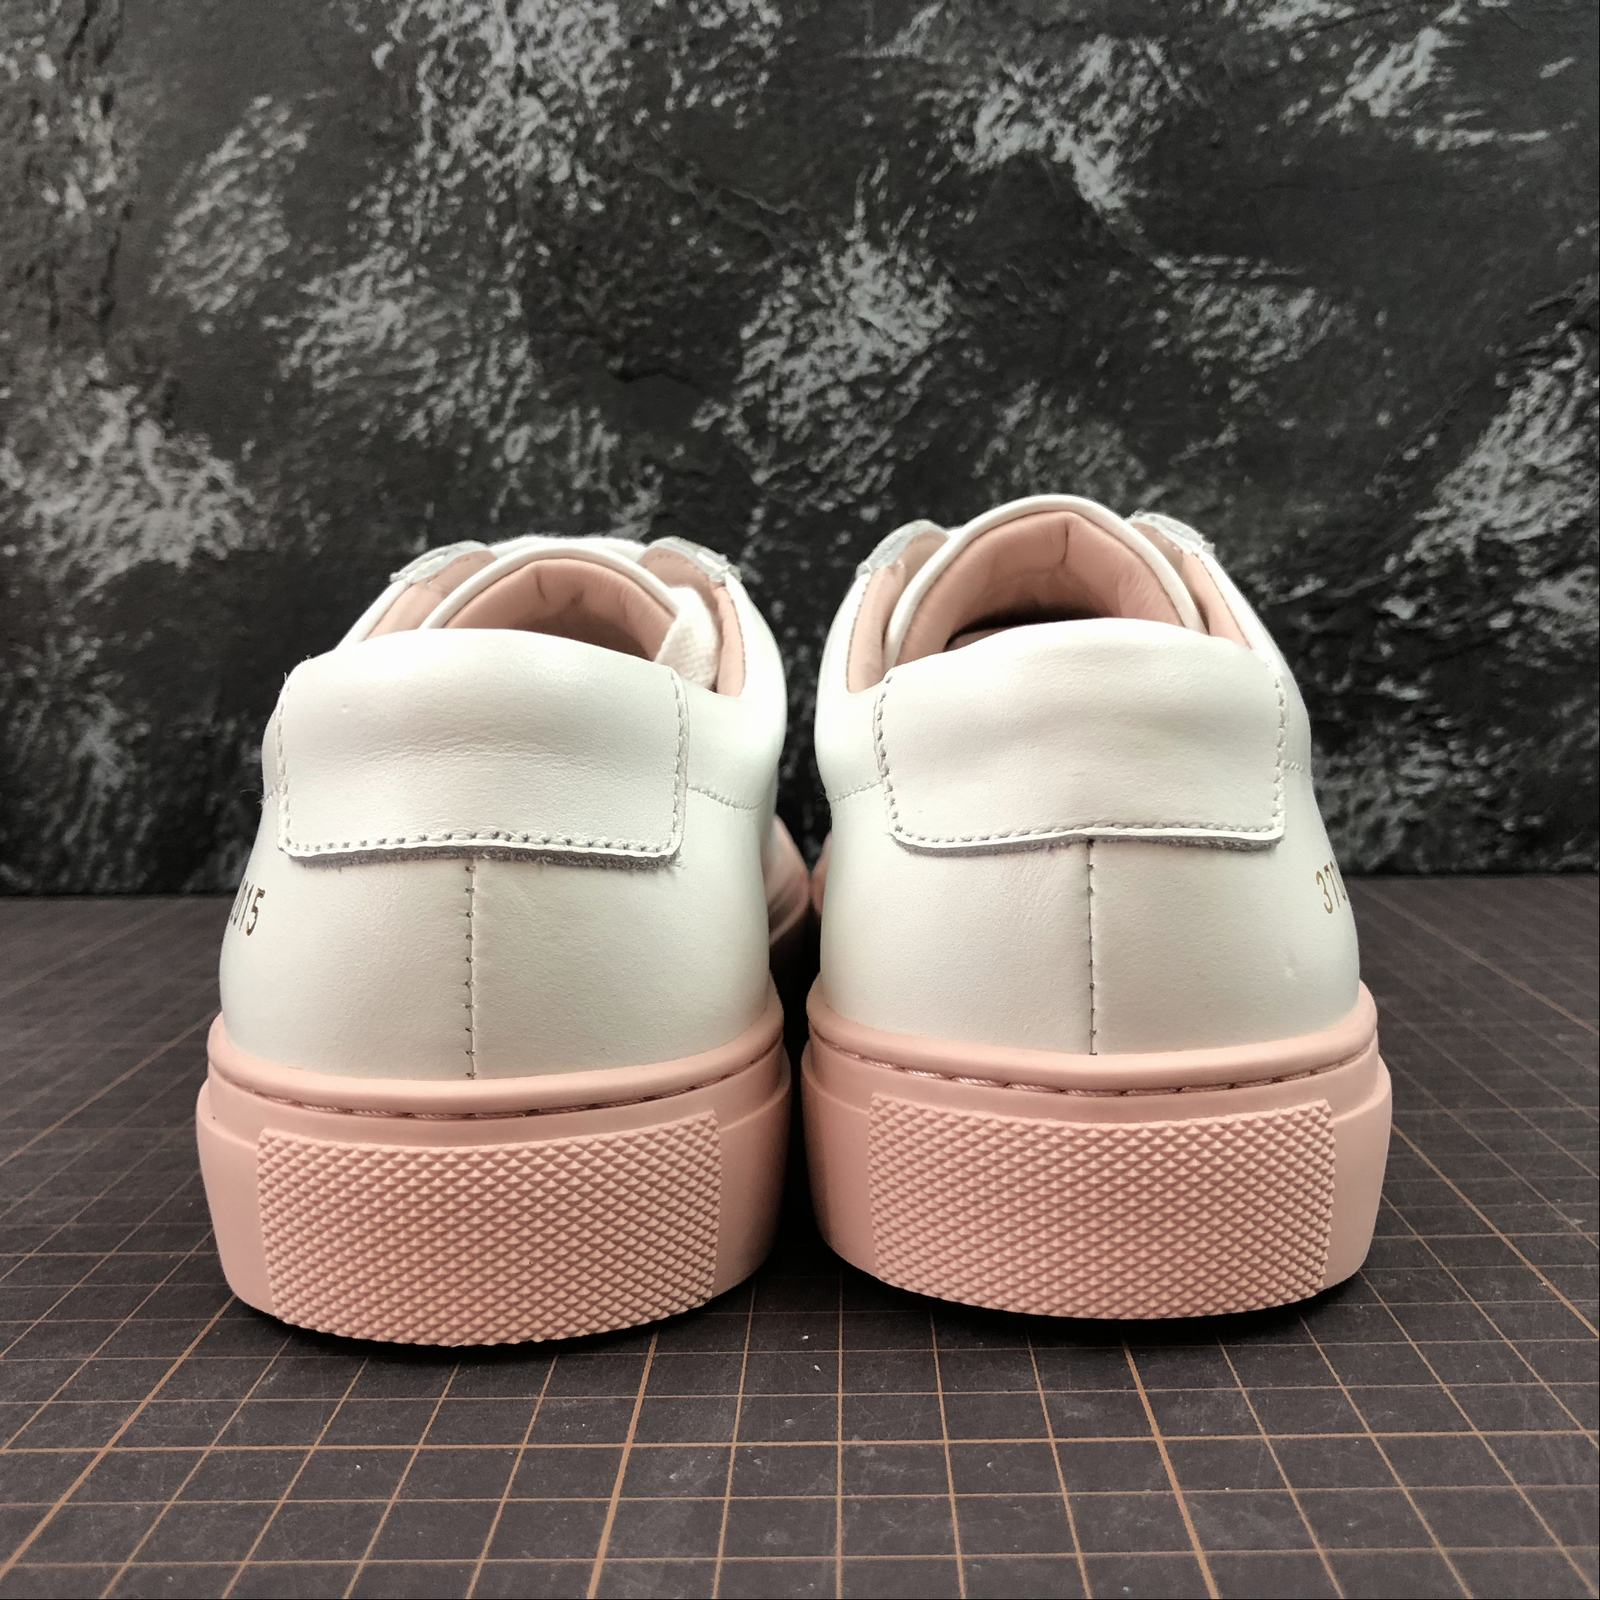 Женские кеды  Common Projects Achilles Low-Top Women White,Pink - фото №4